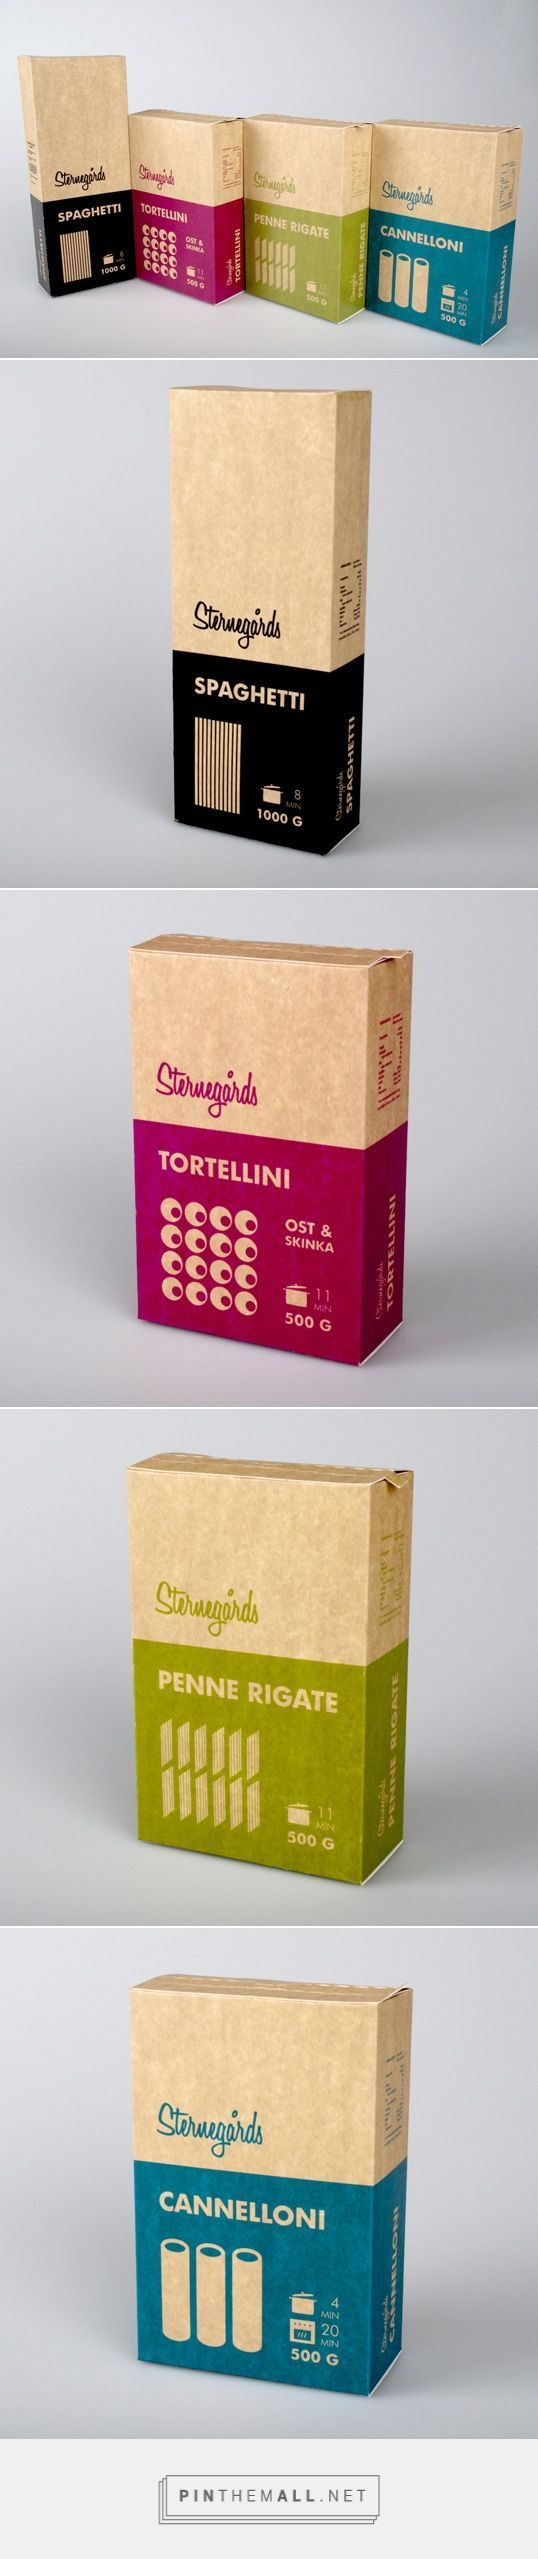 Pasta Packaging Design Curated by Little Buddha | proof that good design can make anything more beautiful